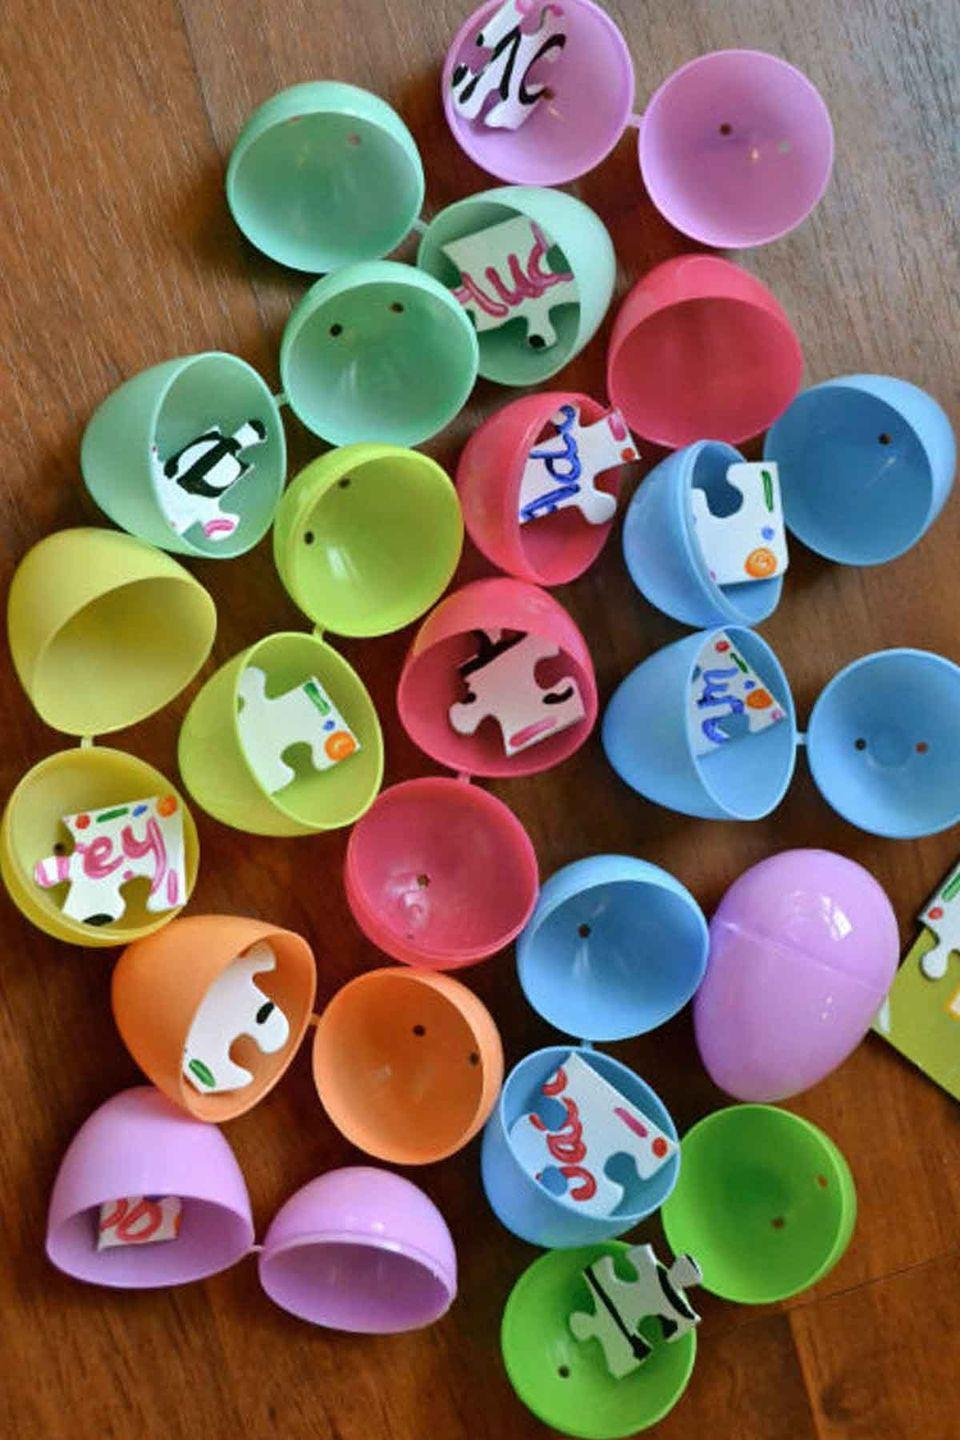 """<p>Put a fun twist on the traditional Easter egg hunt by hiding the pieces of a puzzle inside the eggs. First one to find all the pieces and finish the puzzle wins!</p><p><em>Get the tutorial at <a href=""""http://makethebestofeverything.com/2013/02/puzzle-easter-egg-hunt.html"""" rel=""""nofollow noopener"""" target=""""_blank"""" data-ylk=""""slk:Make The Best of Everything"""" class=""""link rapid-noclick-resp"""">Make The Best of Everything</a>.</em></p>"""